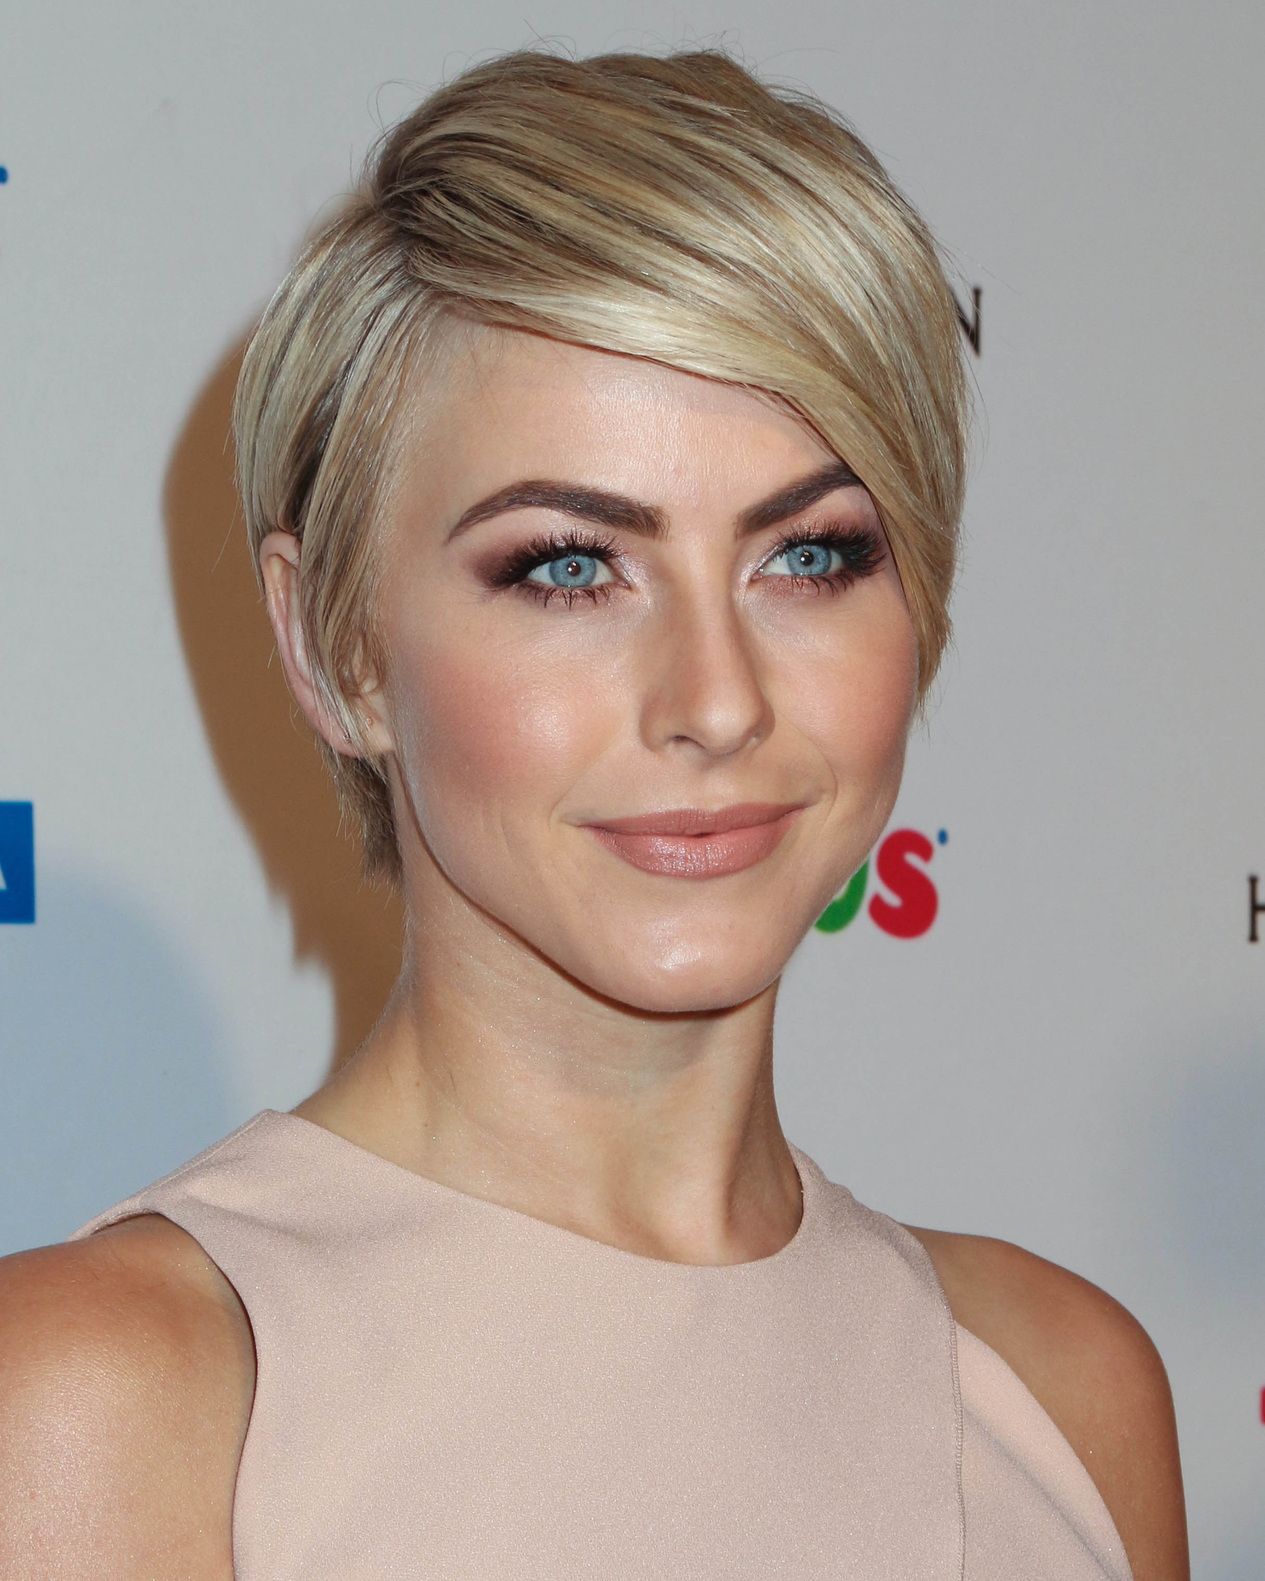 How To Make Short Hair Look Feminine